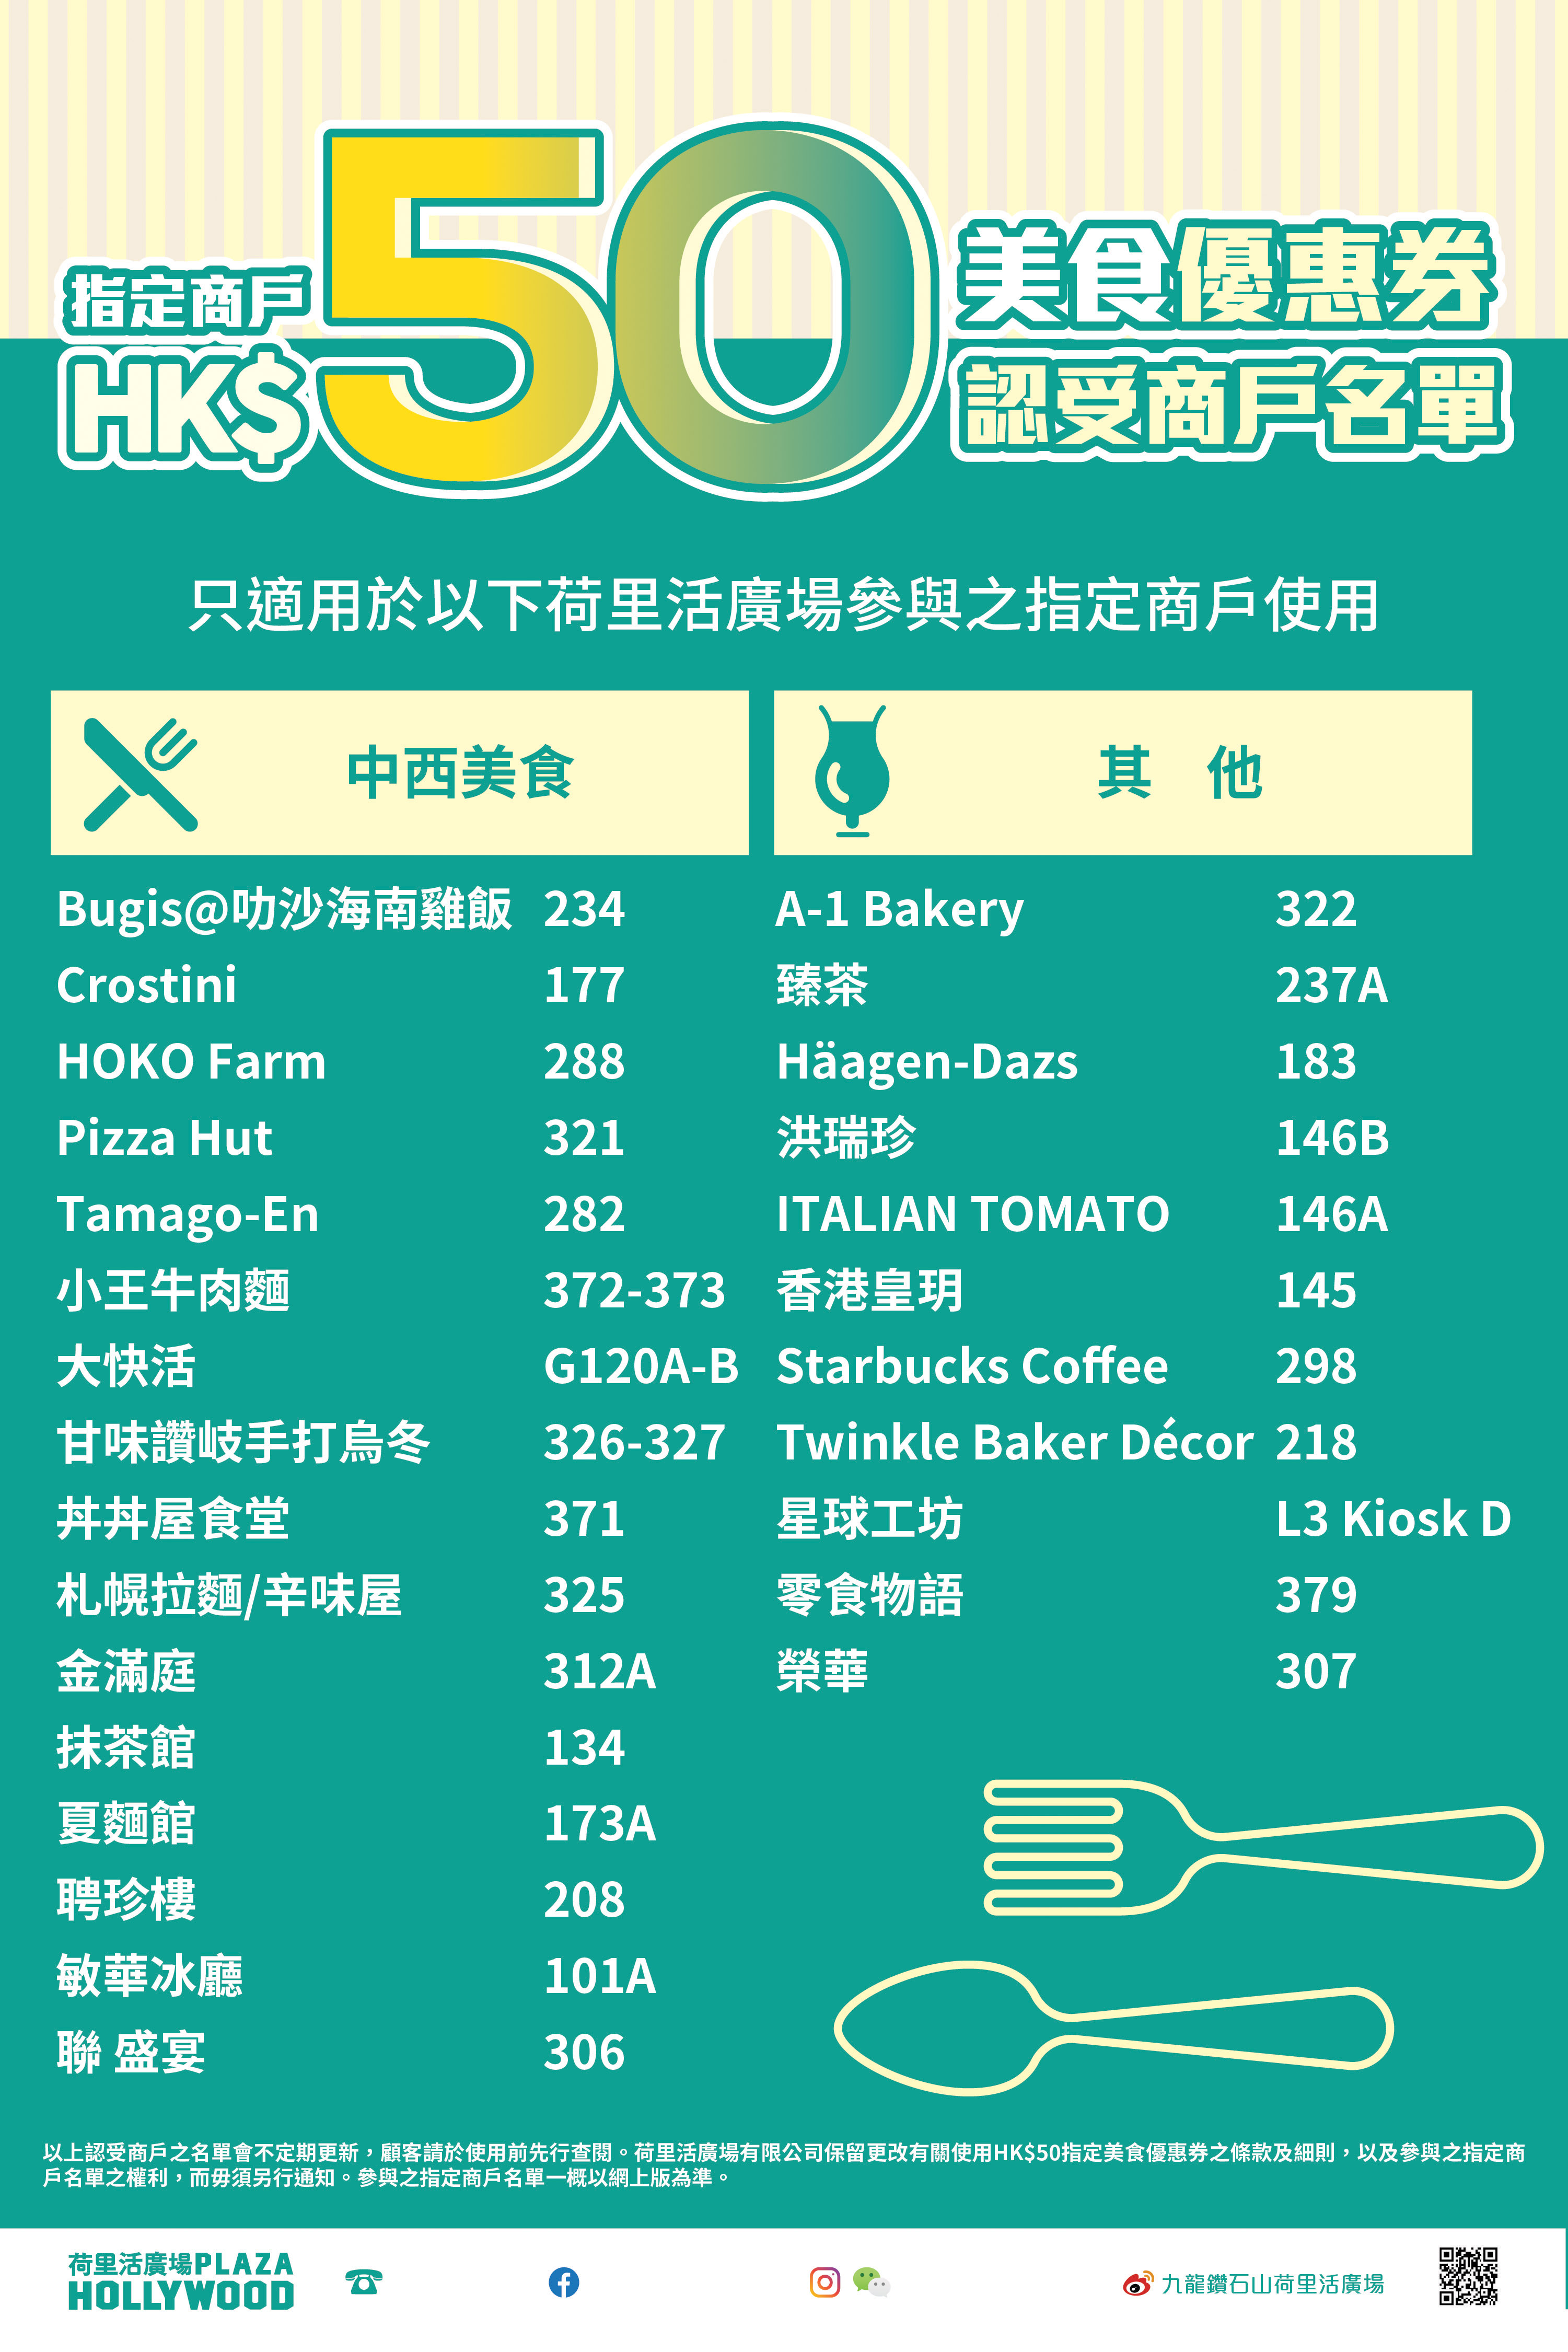 Plaza Hollywood F&B HK$50 Conditional Coupon - Participating designated outlets at Plaza Hollywood